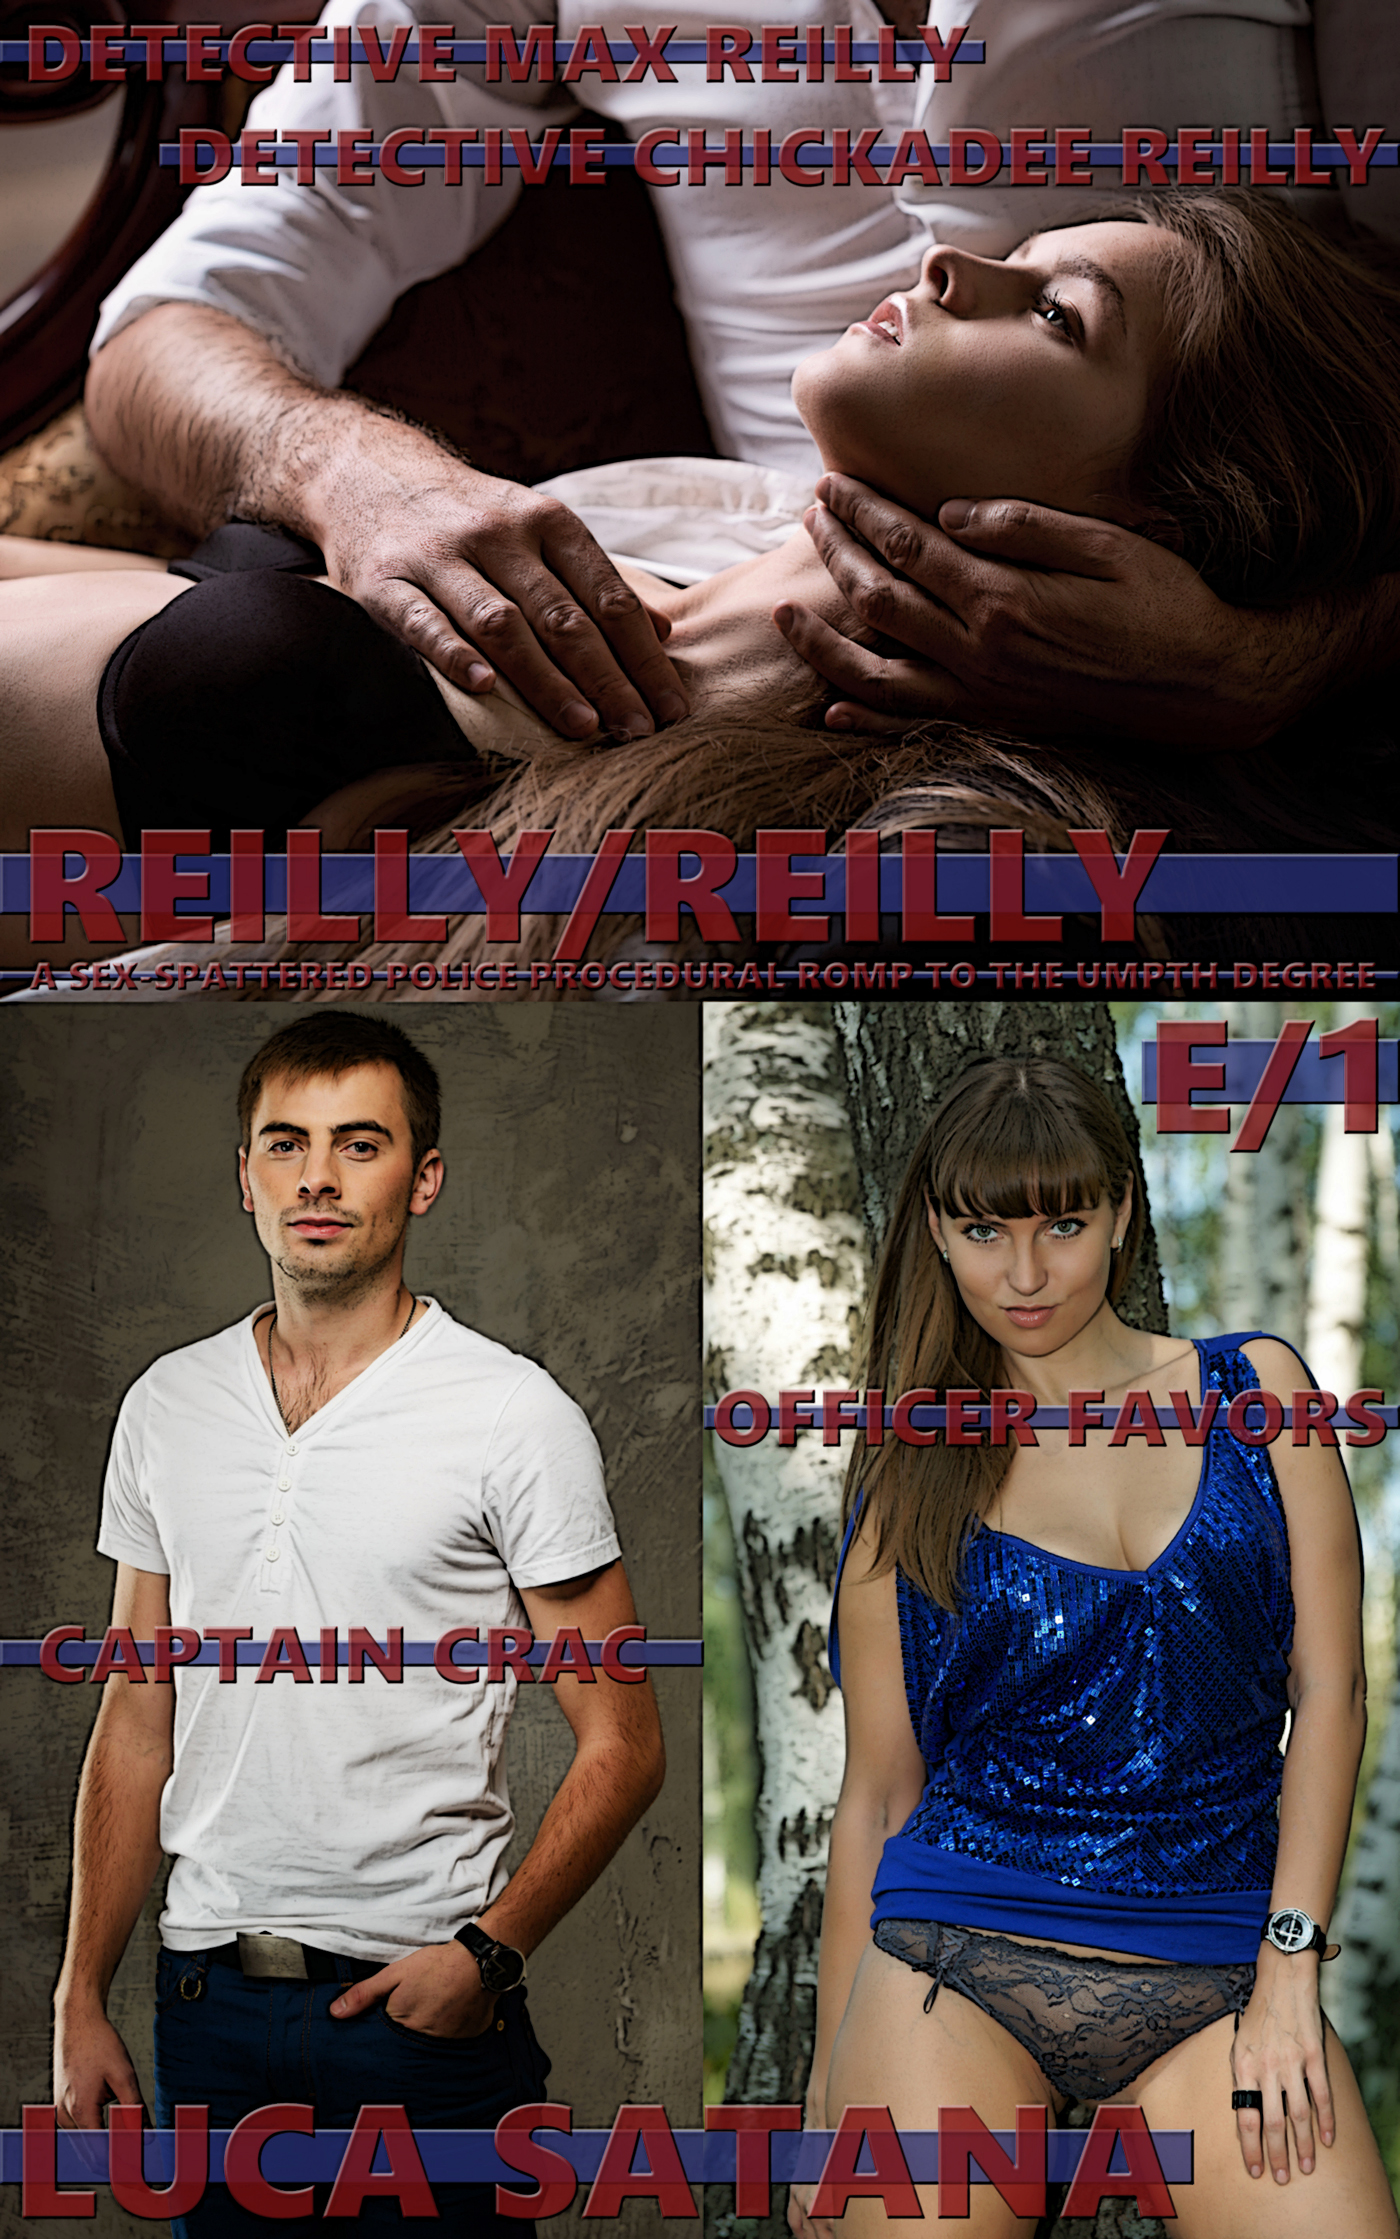 Reilly/Reilly (A Sex-Spattered Police Procedural To The Umpth Degree): Episode 1